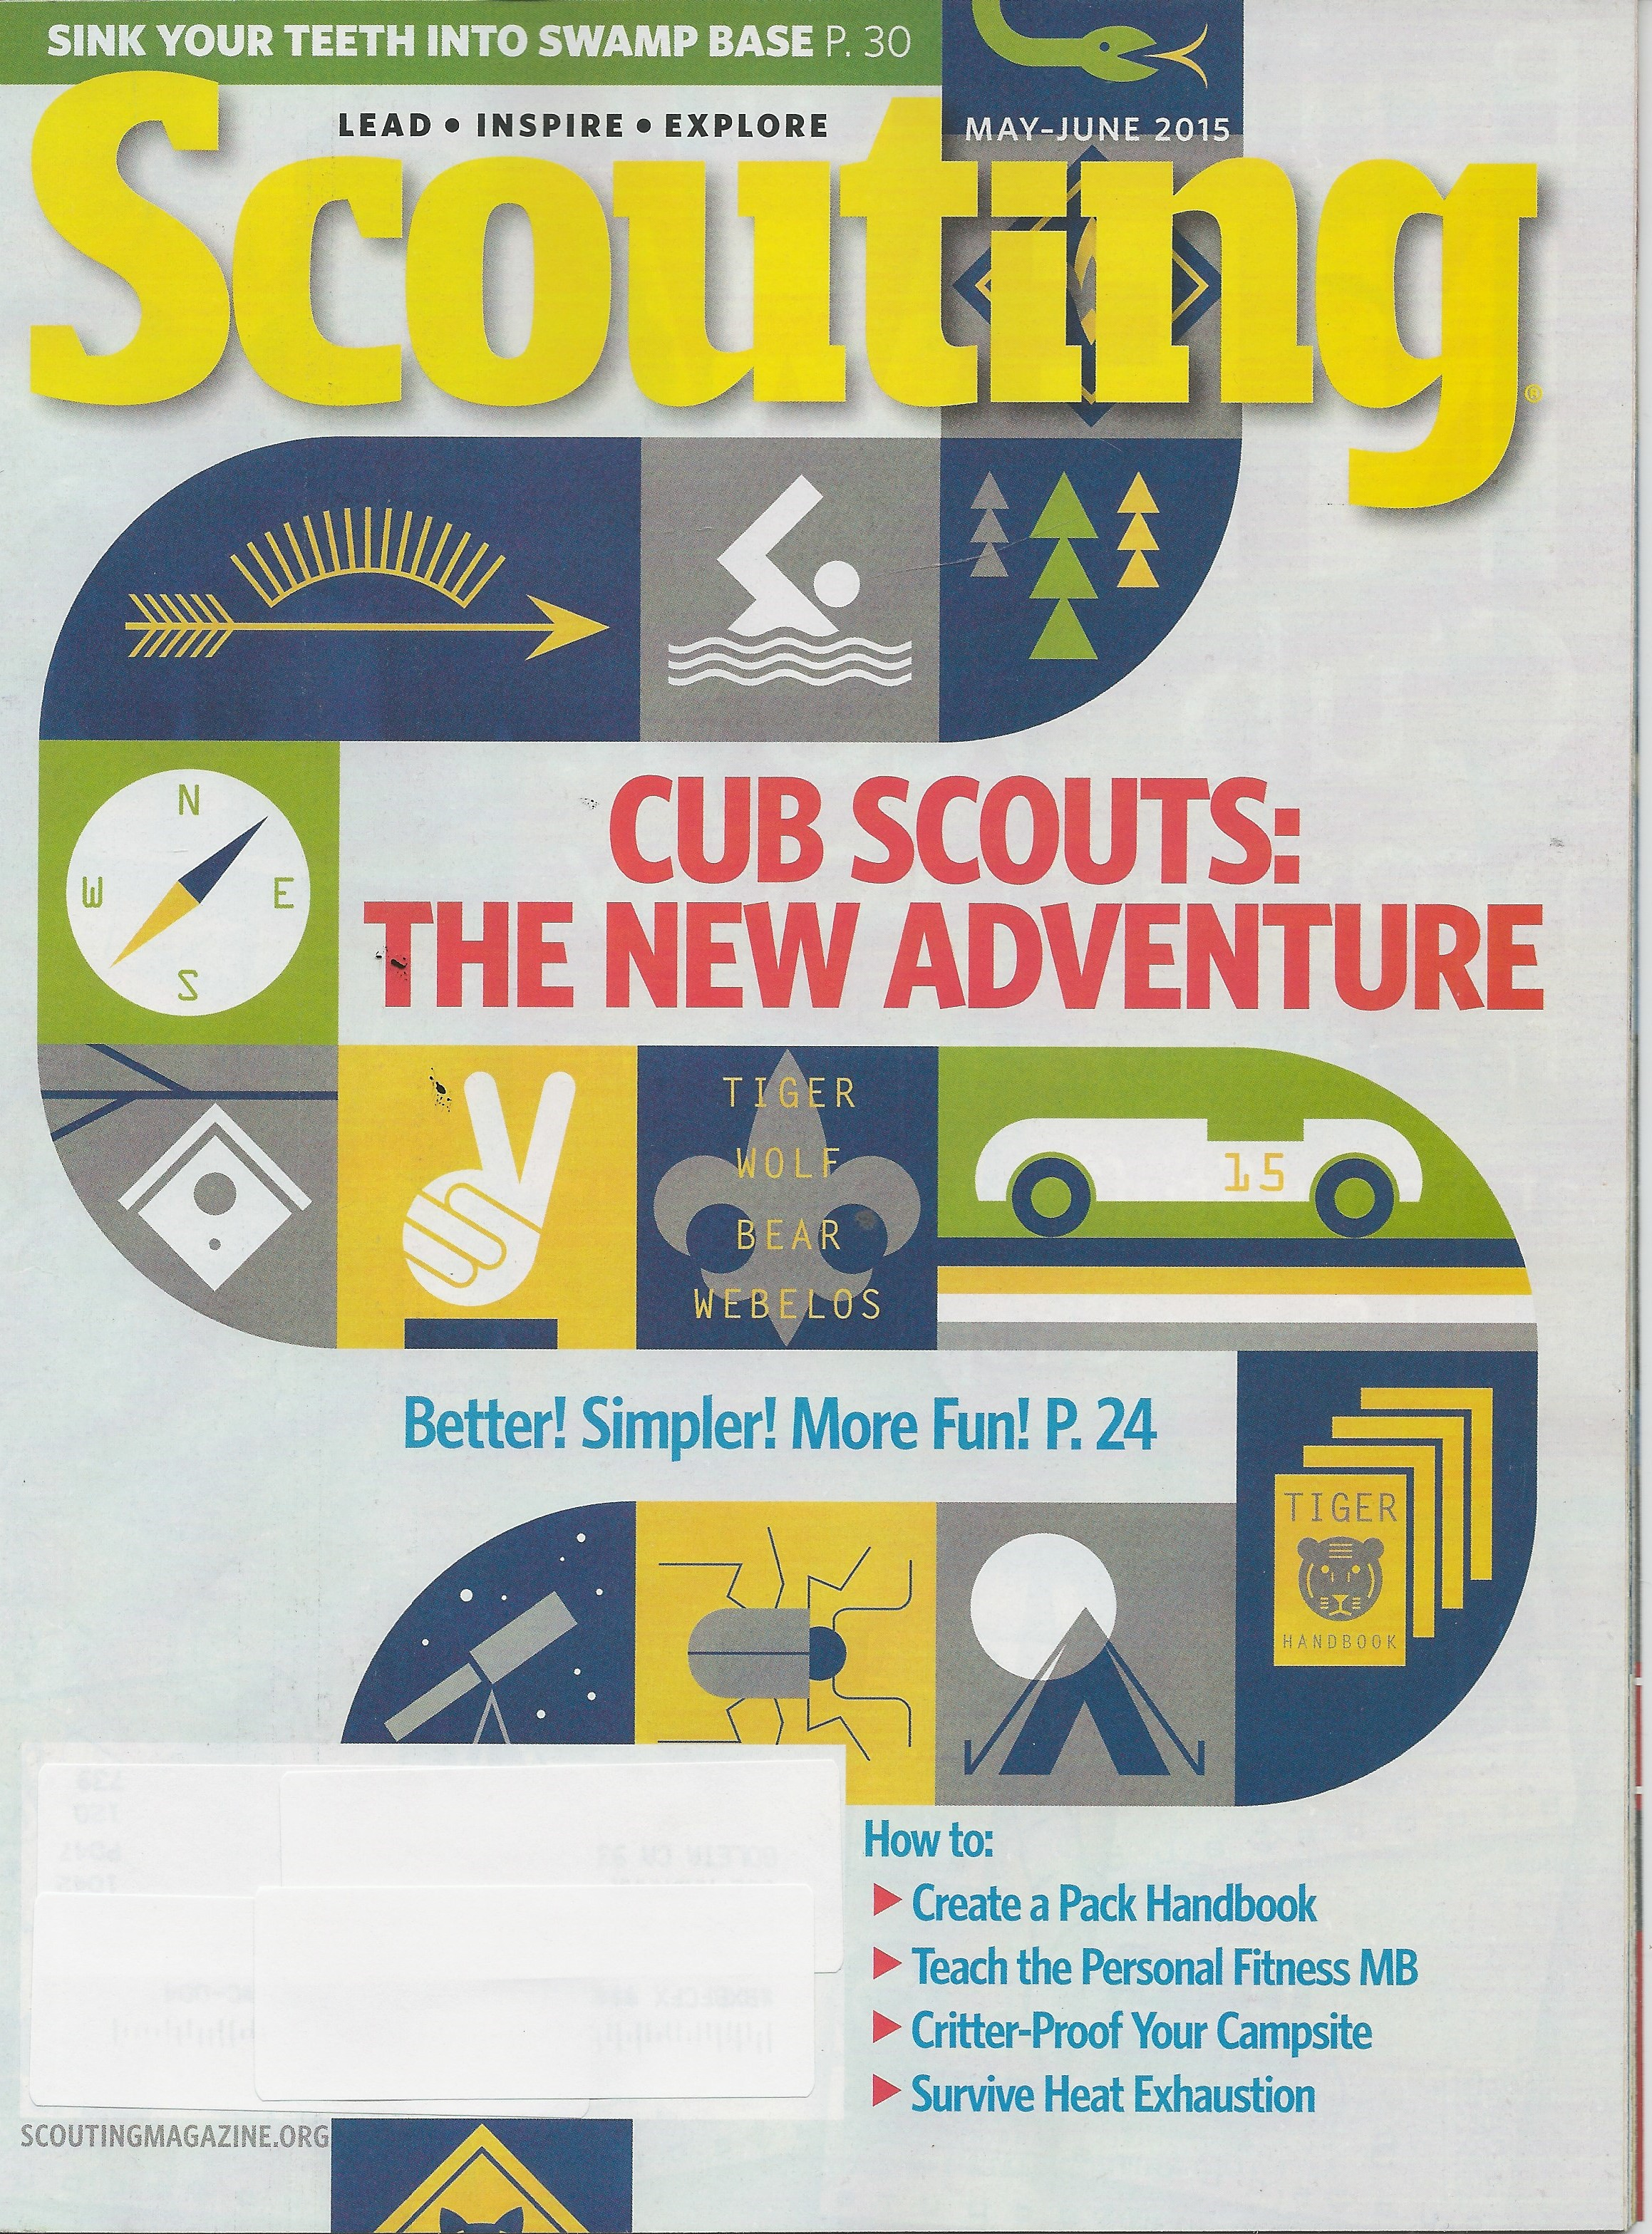 Changes To Cub Scout Program